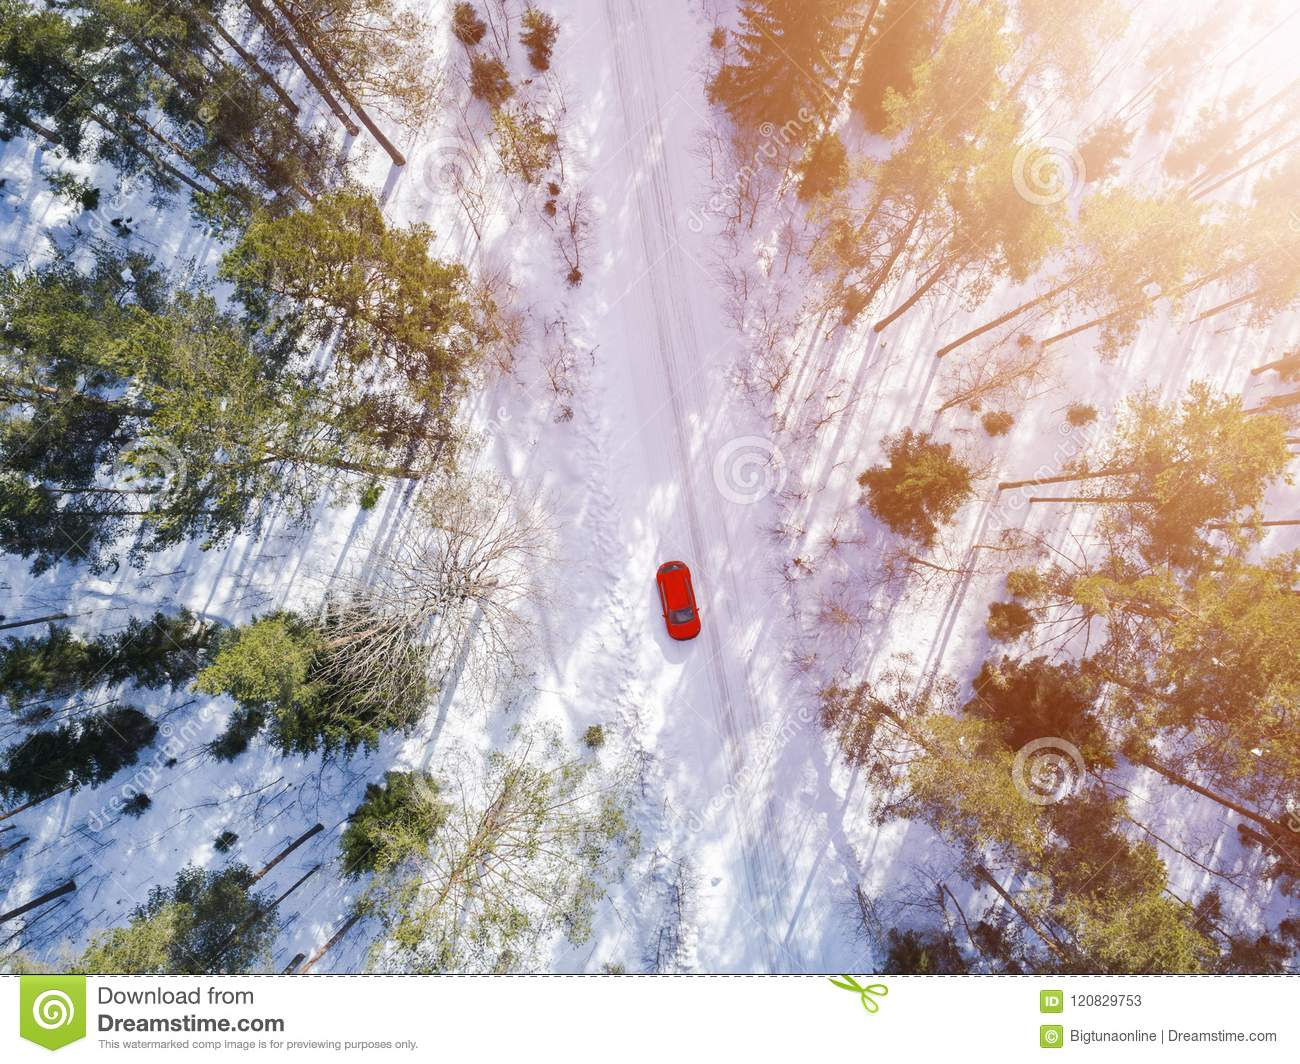 Aerial view of a red car on white winter road. Winter landscape countryside. Aerial photography of snowy forest with a red car on